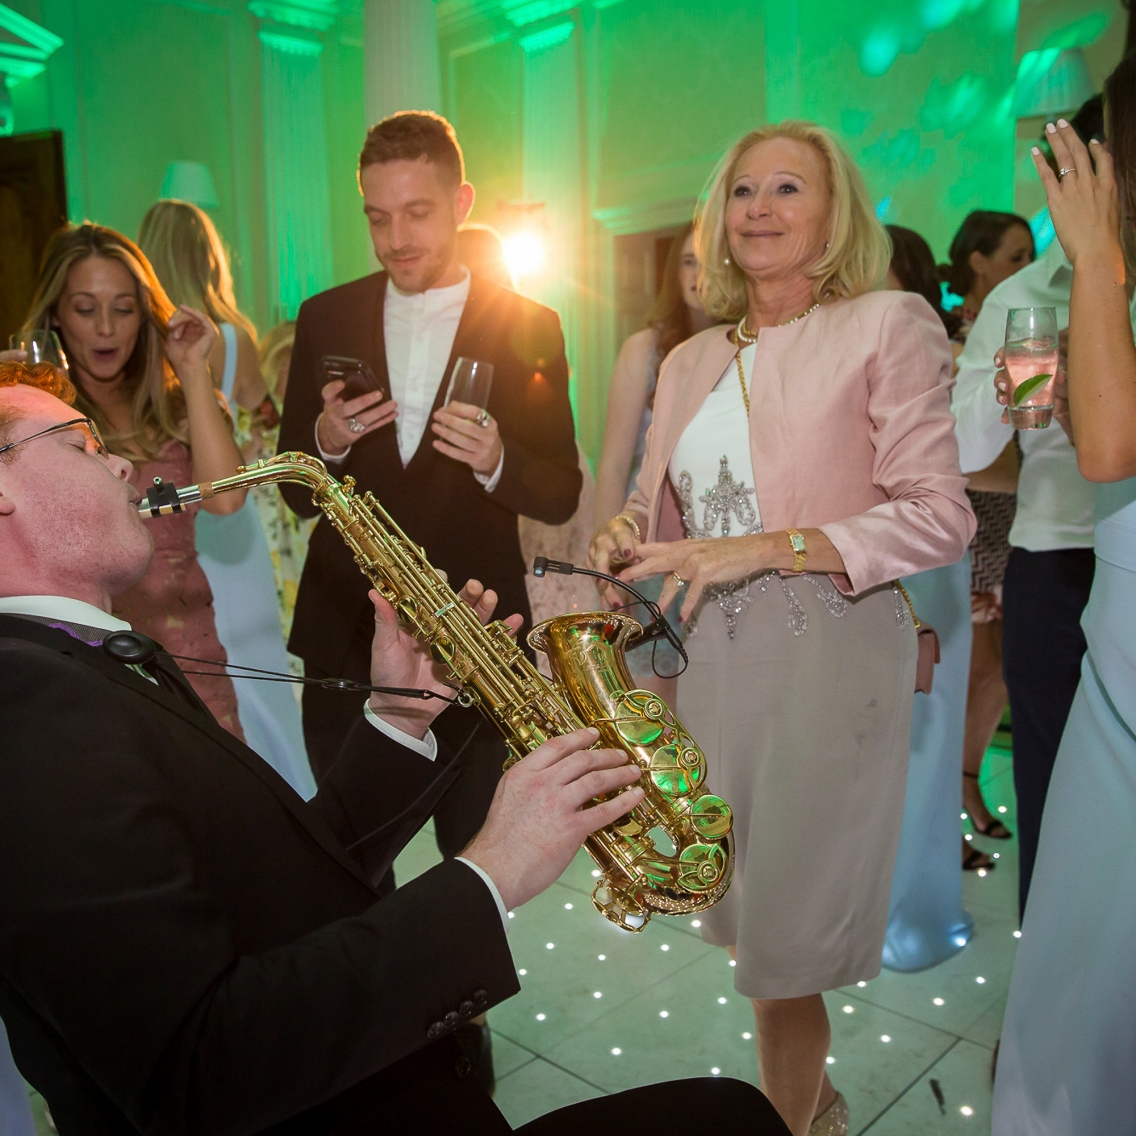 saxophone solo in the crowd